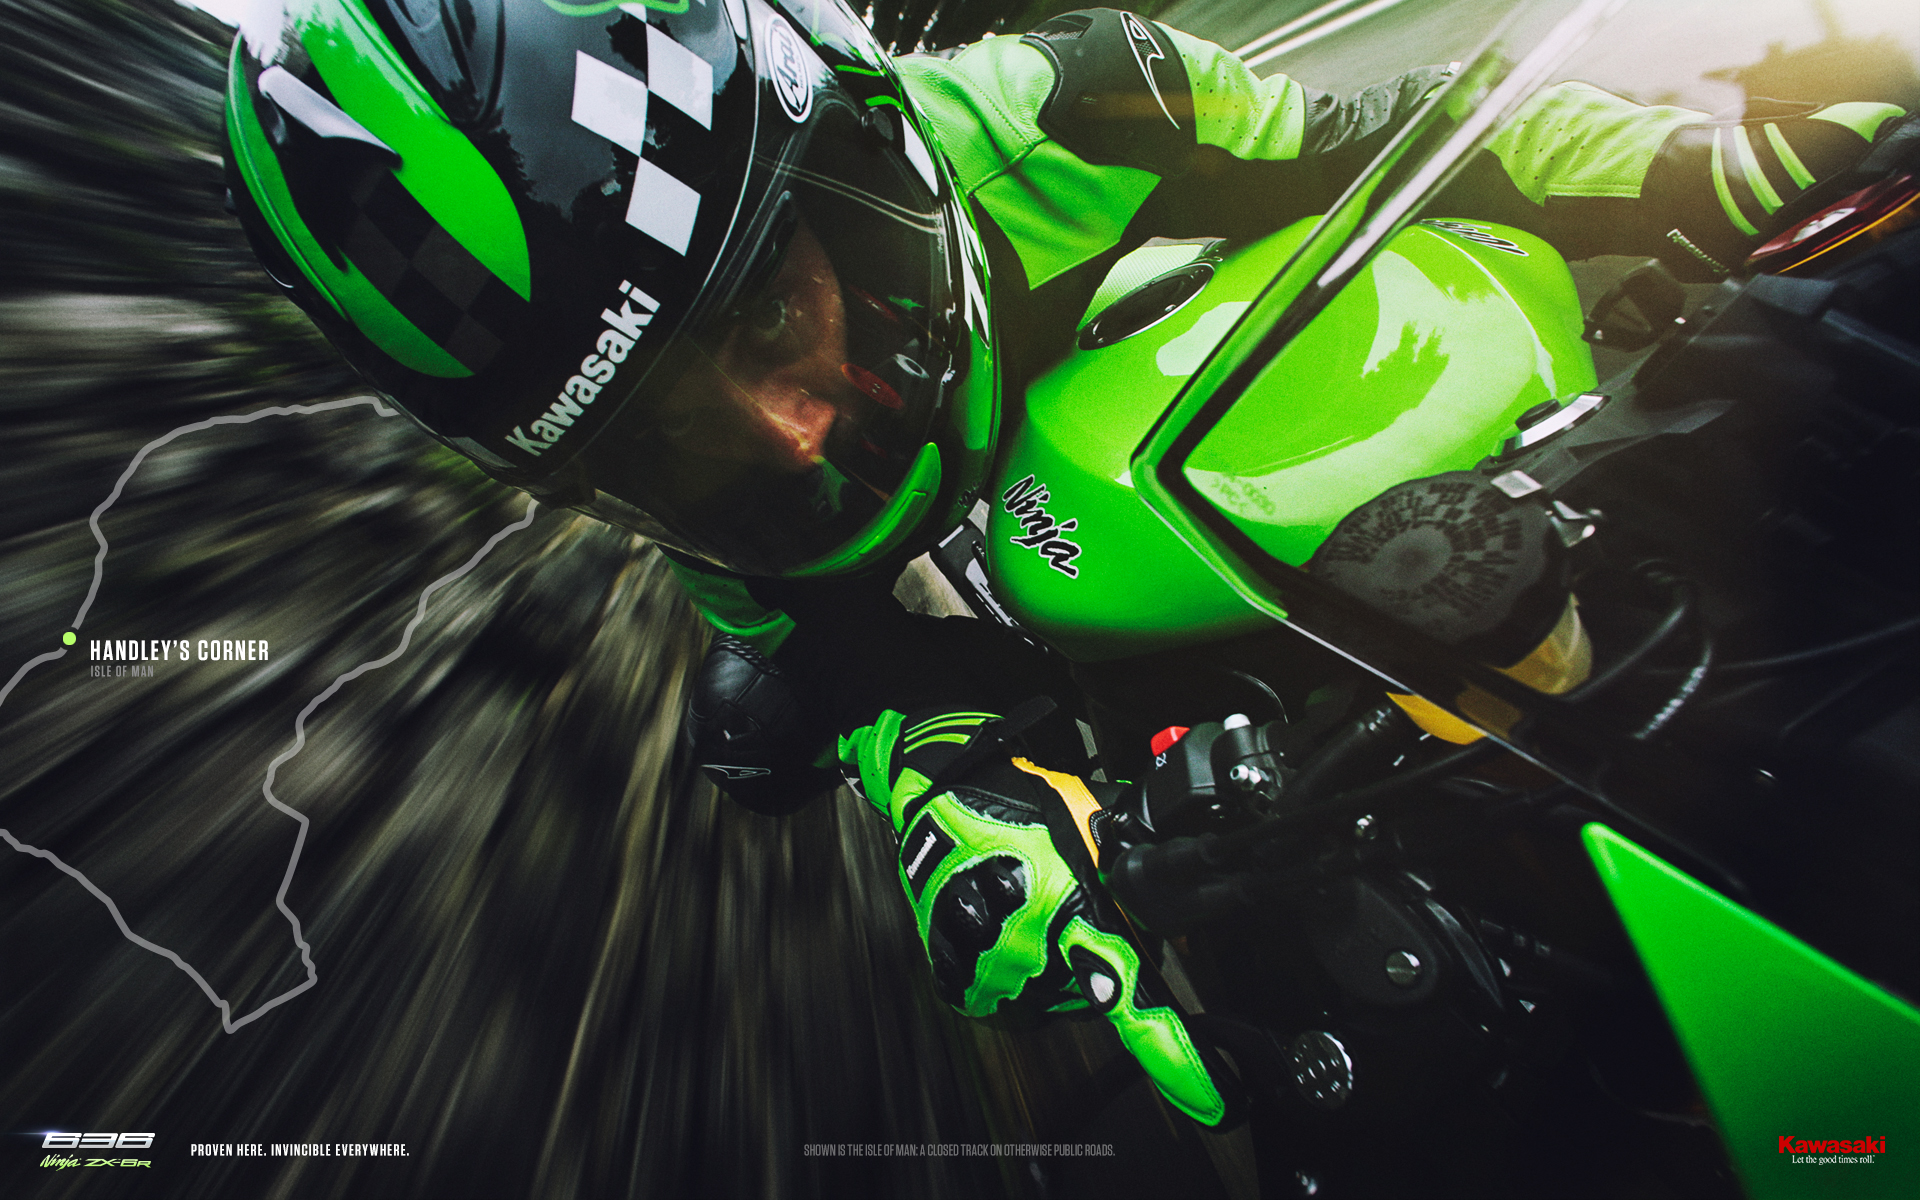 Kawasaki Ninja HD Wallpaper